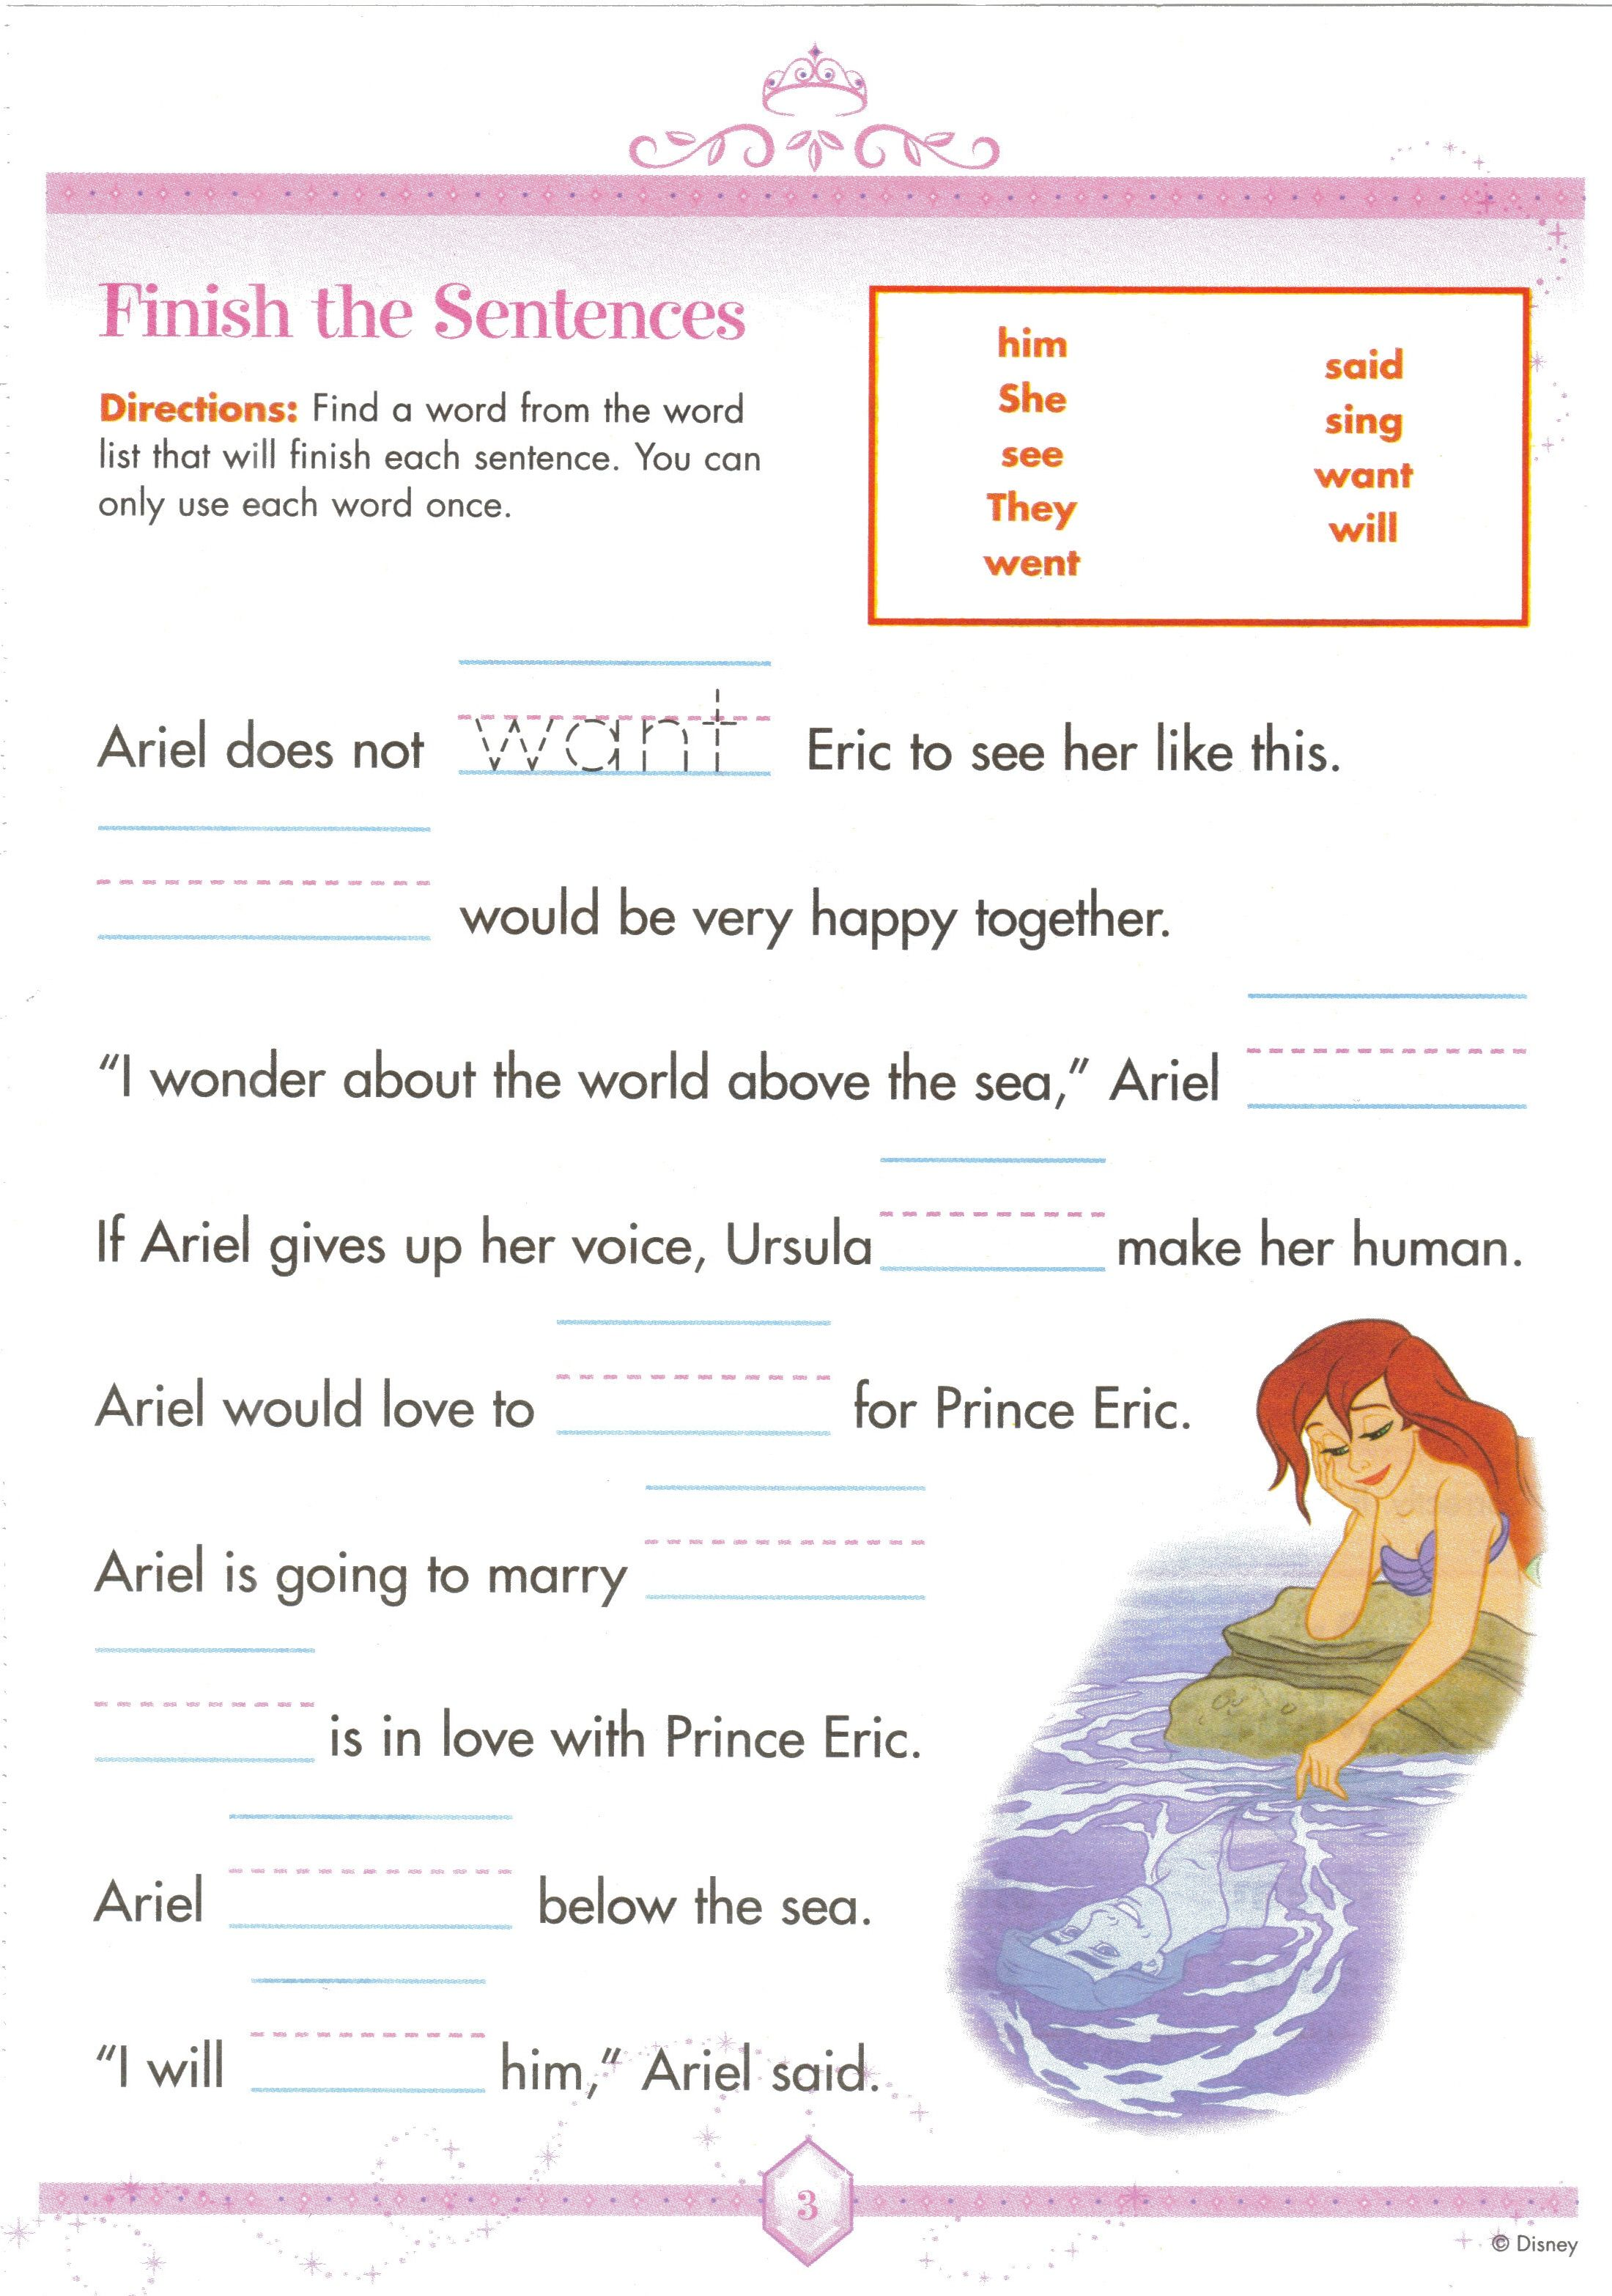 Weirdmailus  Gorgeous  Images About Worksheets On Pinterest  Fun Facts For Kids  With Extraordinary  Images About Worksheets On Pinterest  Fun Facts For Kids Earth Day Worksheets And Jungles With Breathtaking Worksheet Meaning Also Life Management Skills Worksheets In Addition Common Multiples Worksheet And Presidential Trivia Worksheet As Well As Pre K Numbers Worksheets Additionally Adding Money Worksheets Nd Grade From Pinterestcom With Weirdmailus  Extraordinary  Images About Worksheets On Pinterest  Fun Facts For Kids  With Breathtaking  Images About Worksheets On Pinterest  Fun Facts For Kids Earth Day Worksheets And Jungles And Gorgeous Worksheet Meaning Also Life Management Skills Worksheets In Addition Common Multiples Worksheet From Pinterestcom